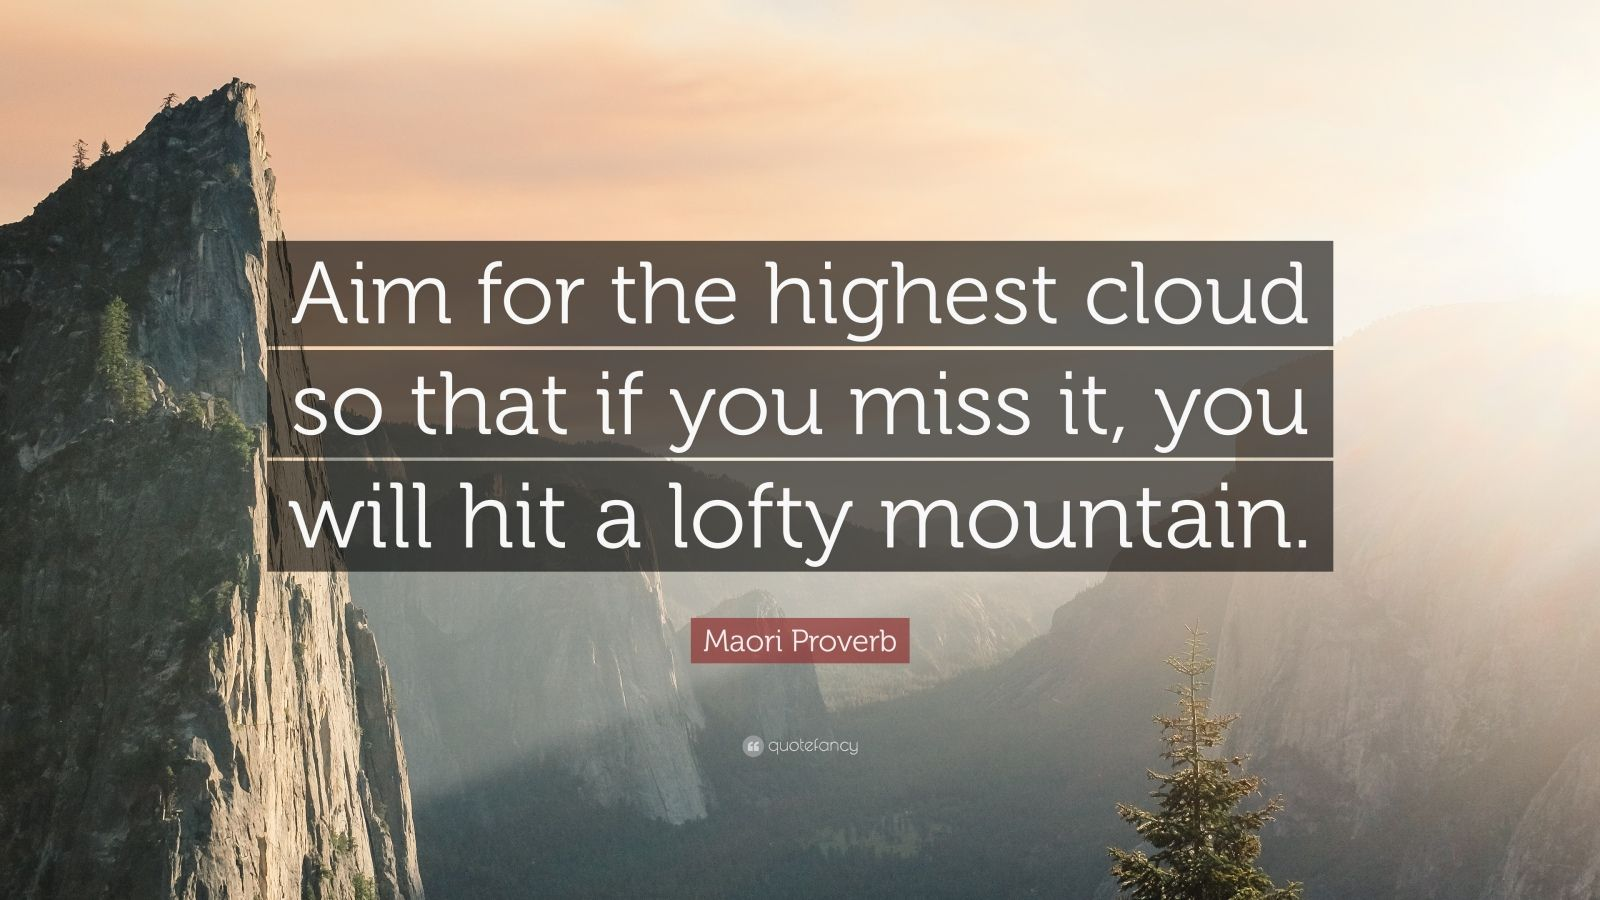 """Maori Proverb Quote: """"Aim for the highest cloud so that if you miss it, you will hit a lofty mountain."""""""